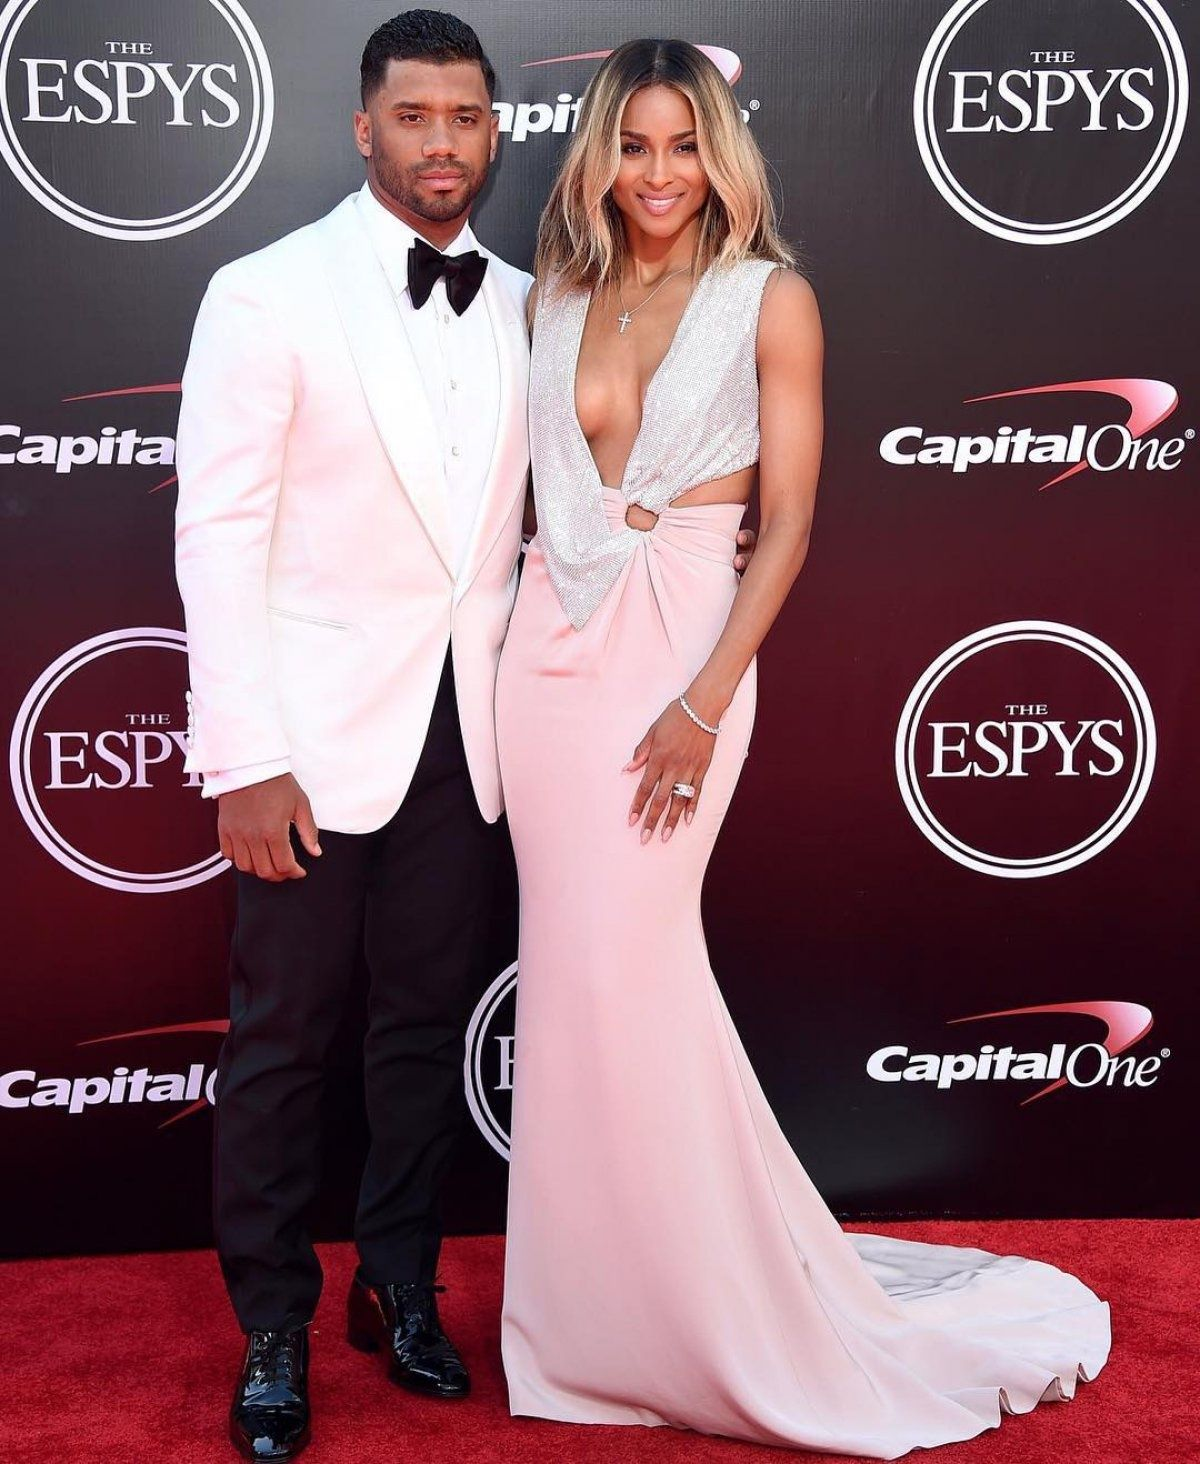 Ciara and Russell Wilson attend ESPY Awards after honeymoon ...